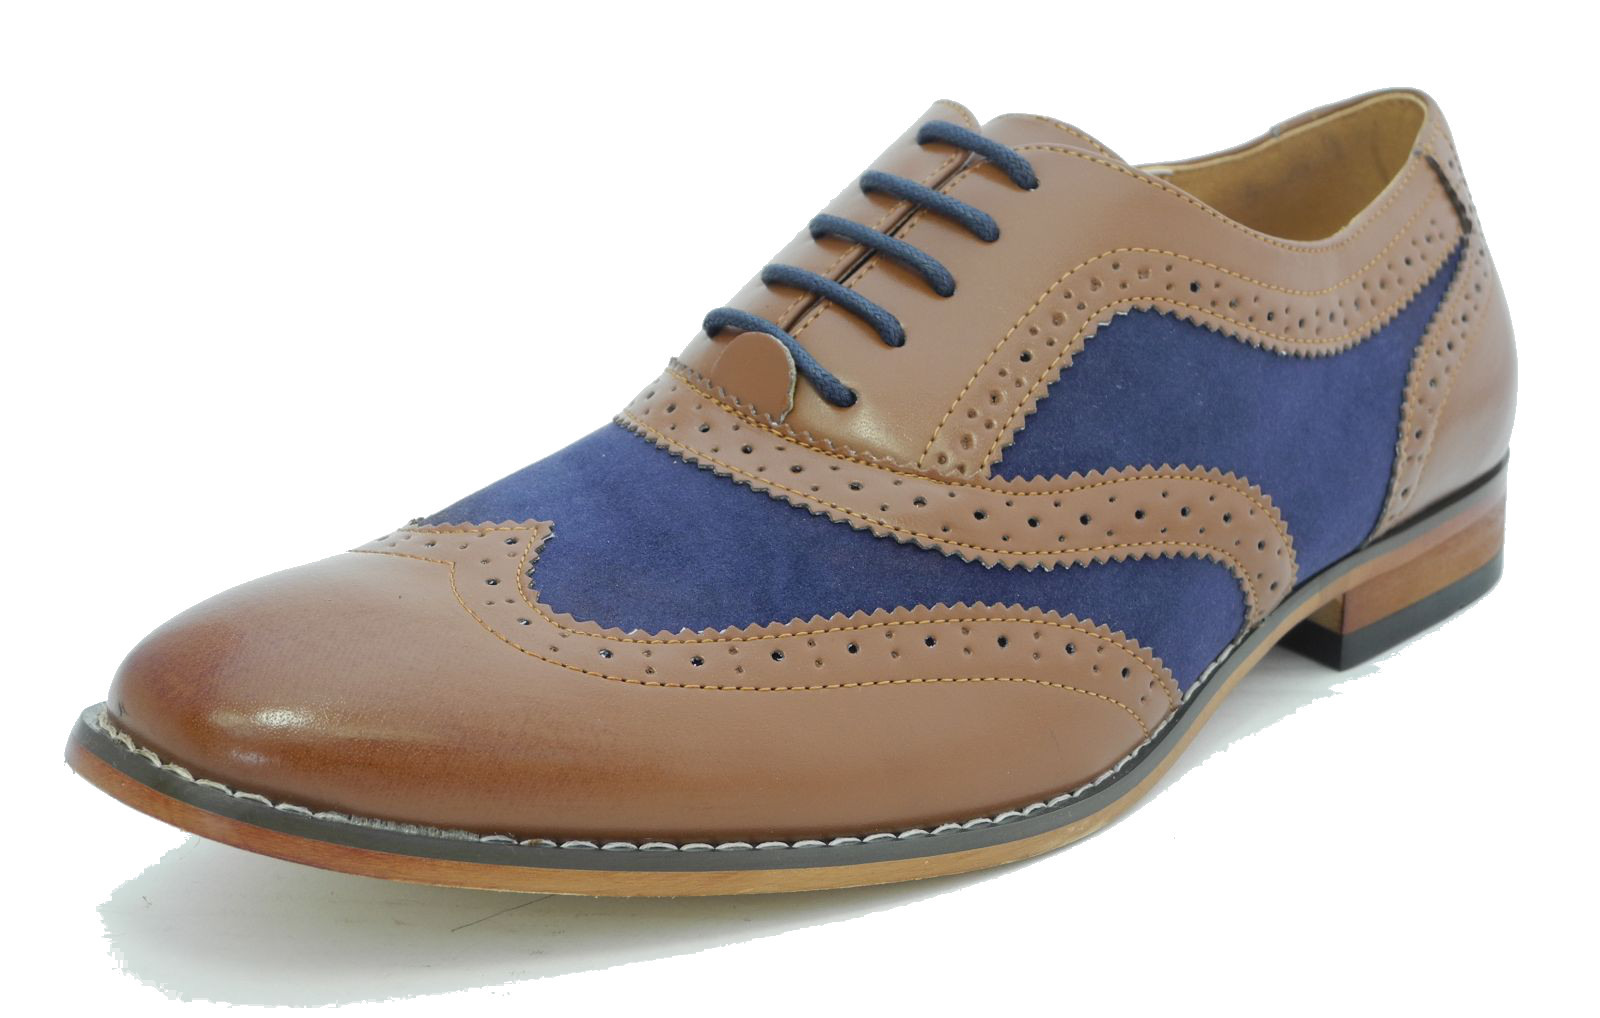 Half brogue cap toe Italian leather dress shoes in Dark Grey Antique and Blue Antique. The Half Brogue Kendrik cap toe dress shoes in Dark Grey and Dark Blue Antique is hand-crafted from supple Italian leather with a definite cap toe and beautiful detailing. All Ace Marks shoes have a durable blake flex construction with leather soles and waxed dress shoe laces.